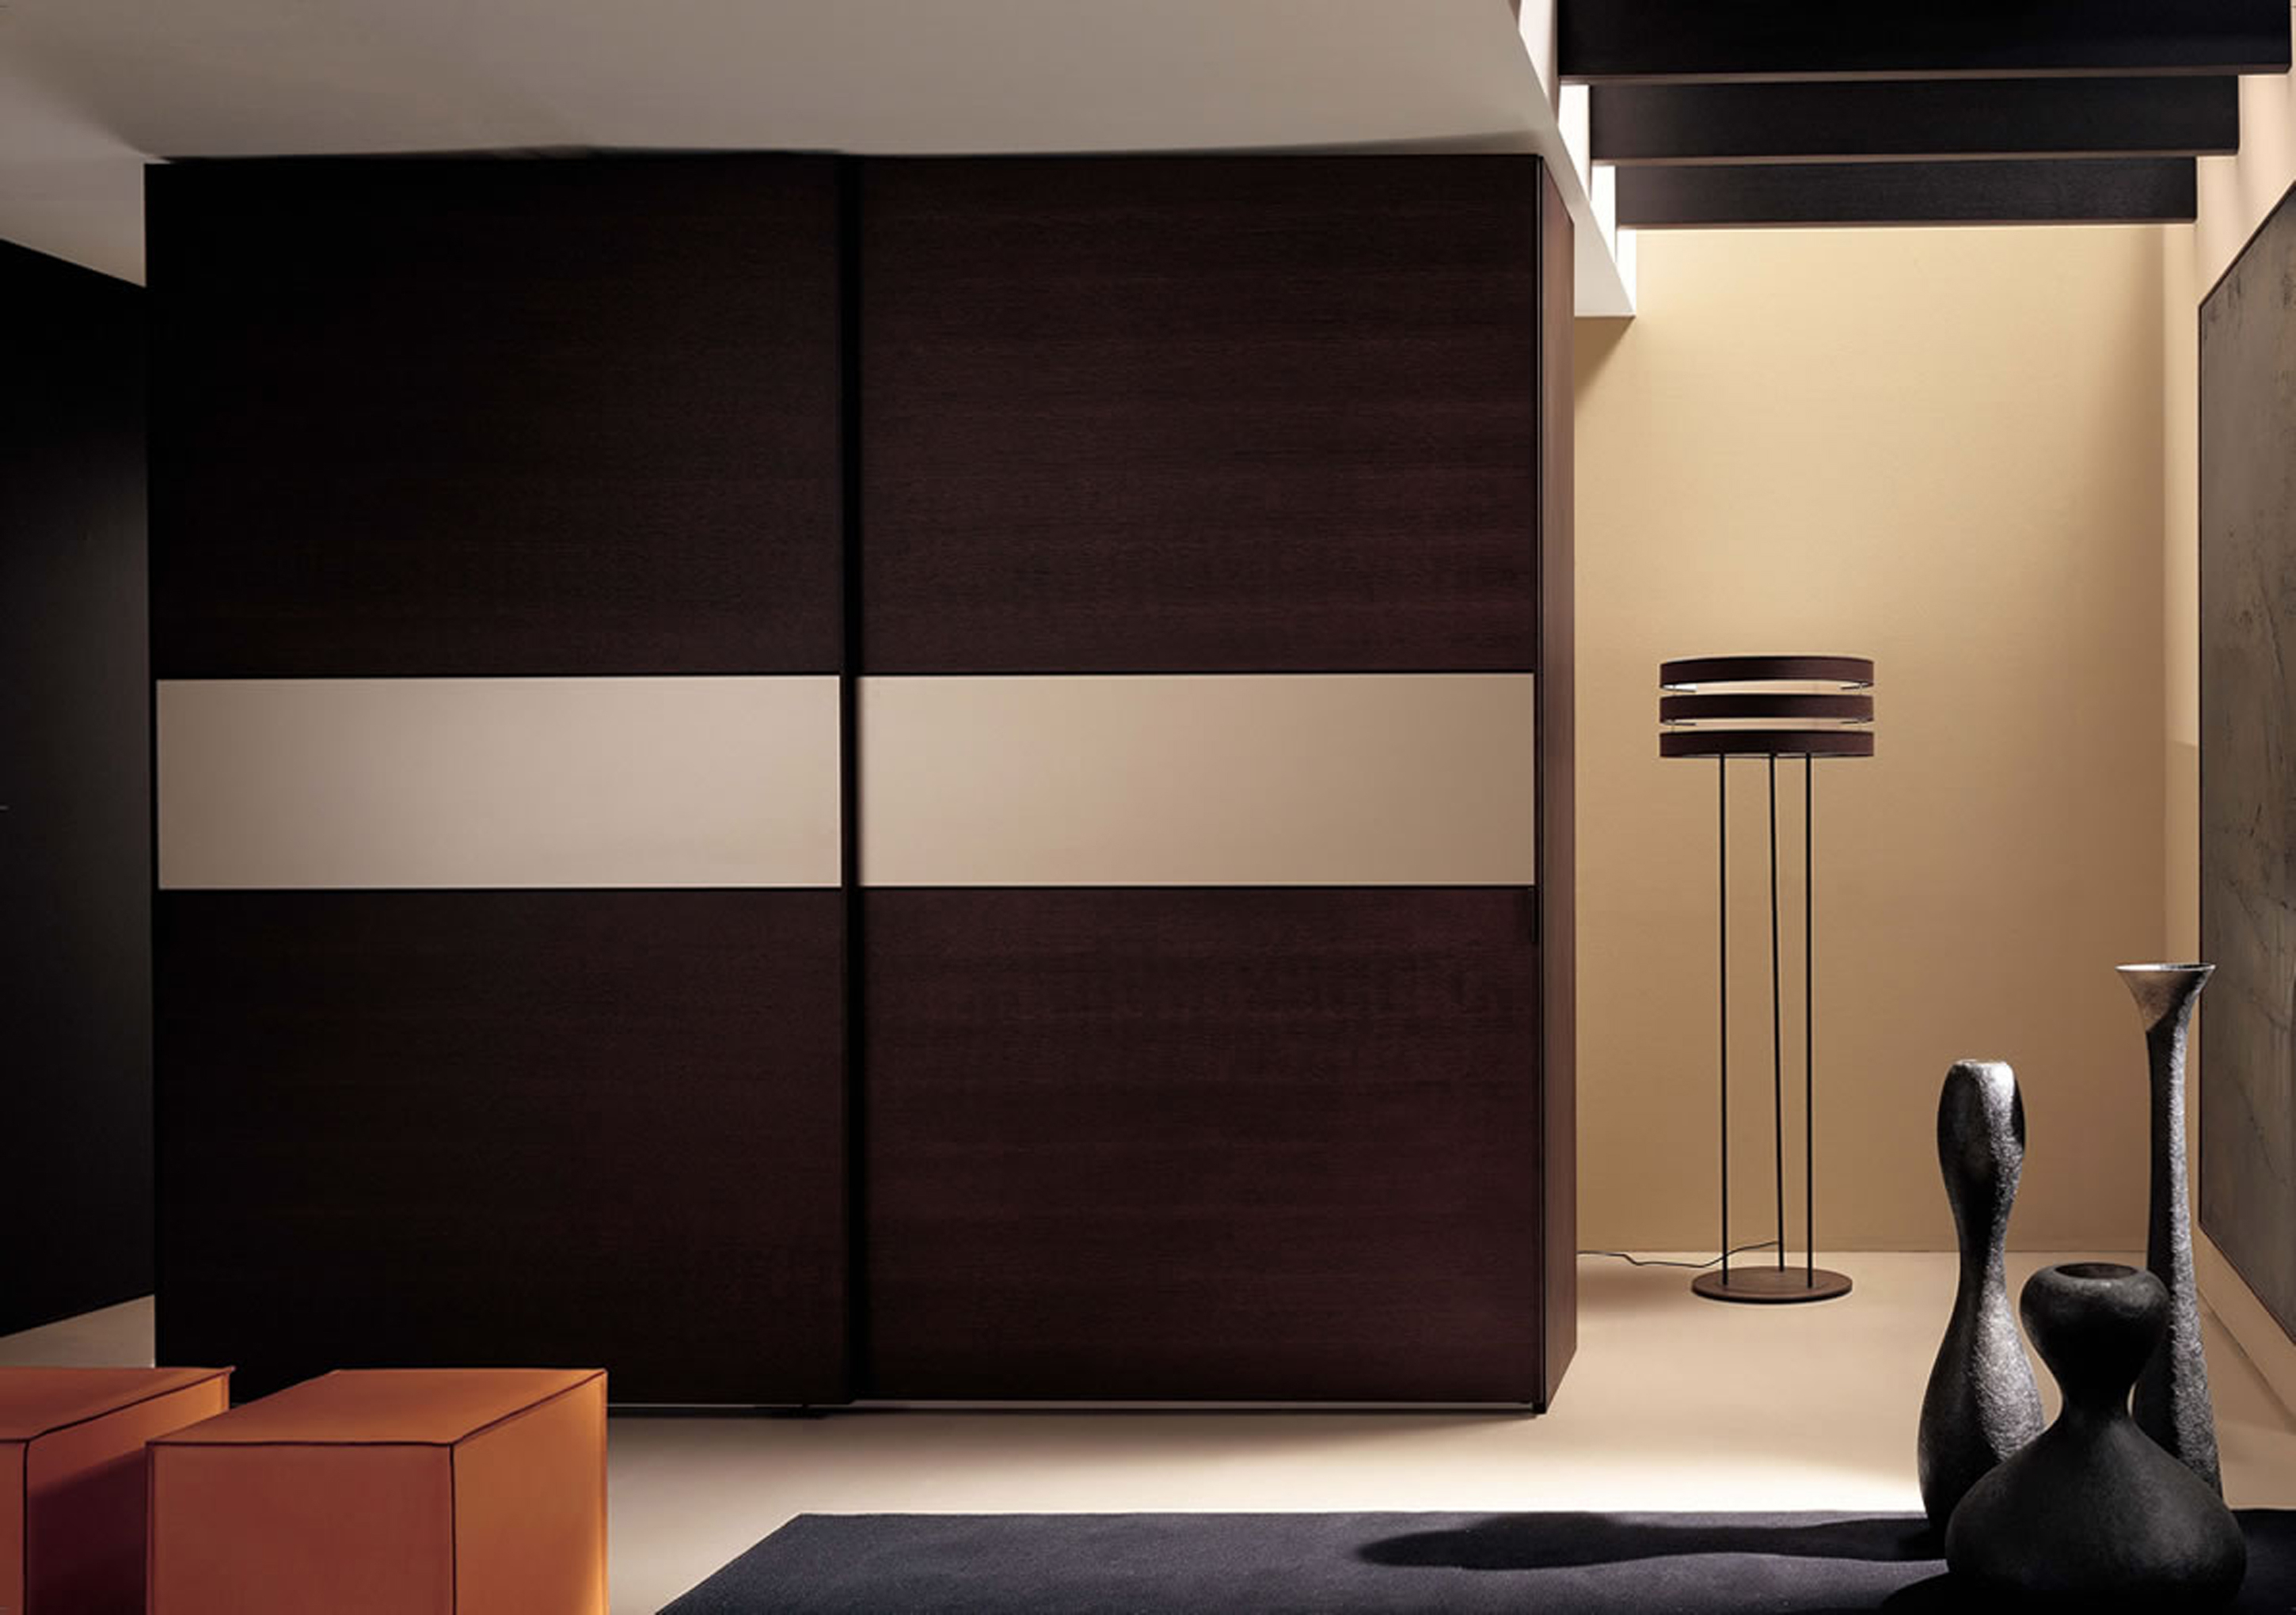 Luxurious Great Chocolate Wardrobe Design Idea With Cream Border Sliding Door And Orange Pouffes Charming Great Wardrobe Design Ideas (Image 9 of 123)